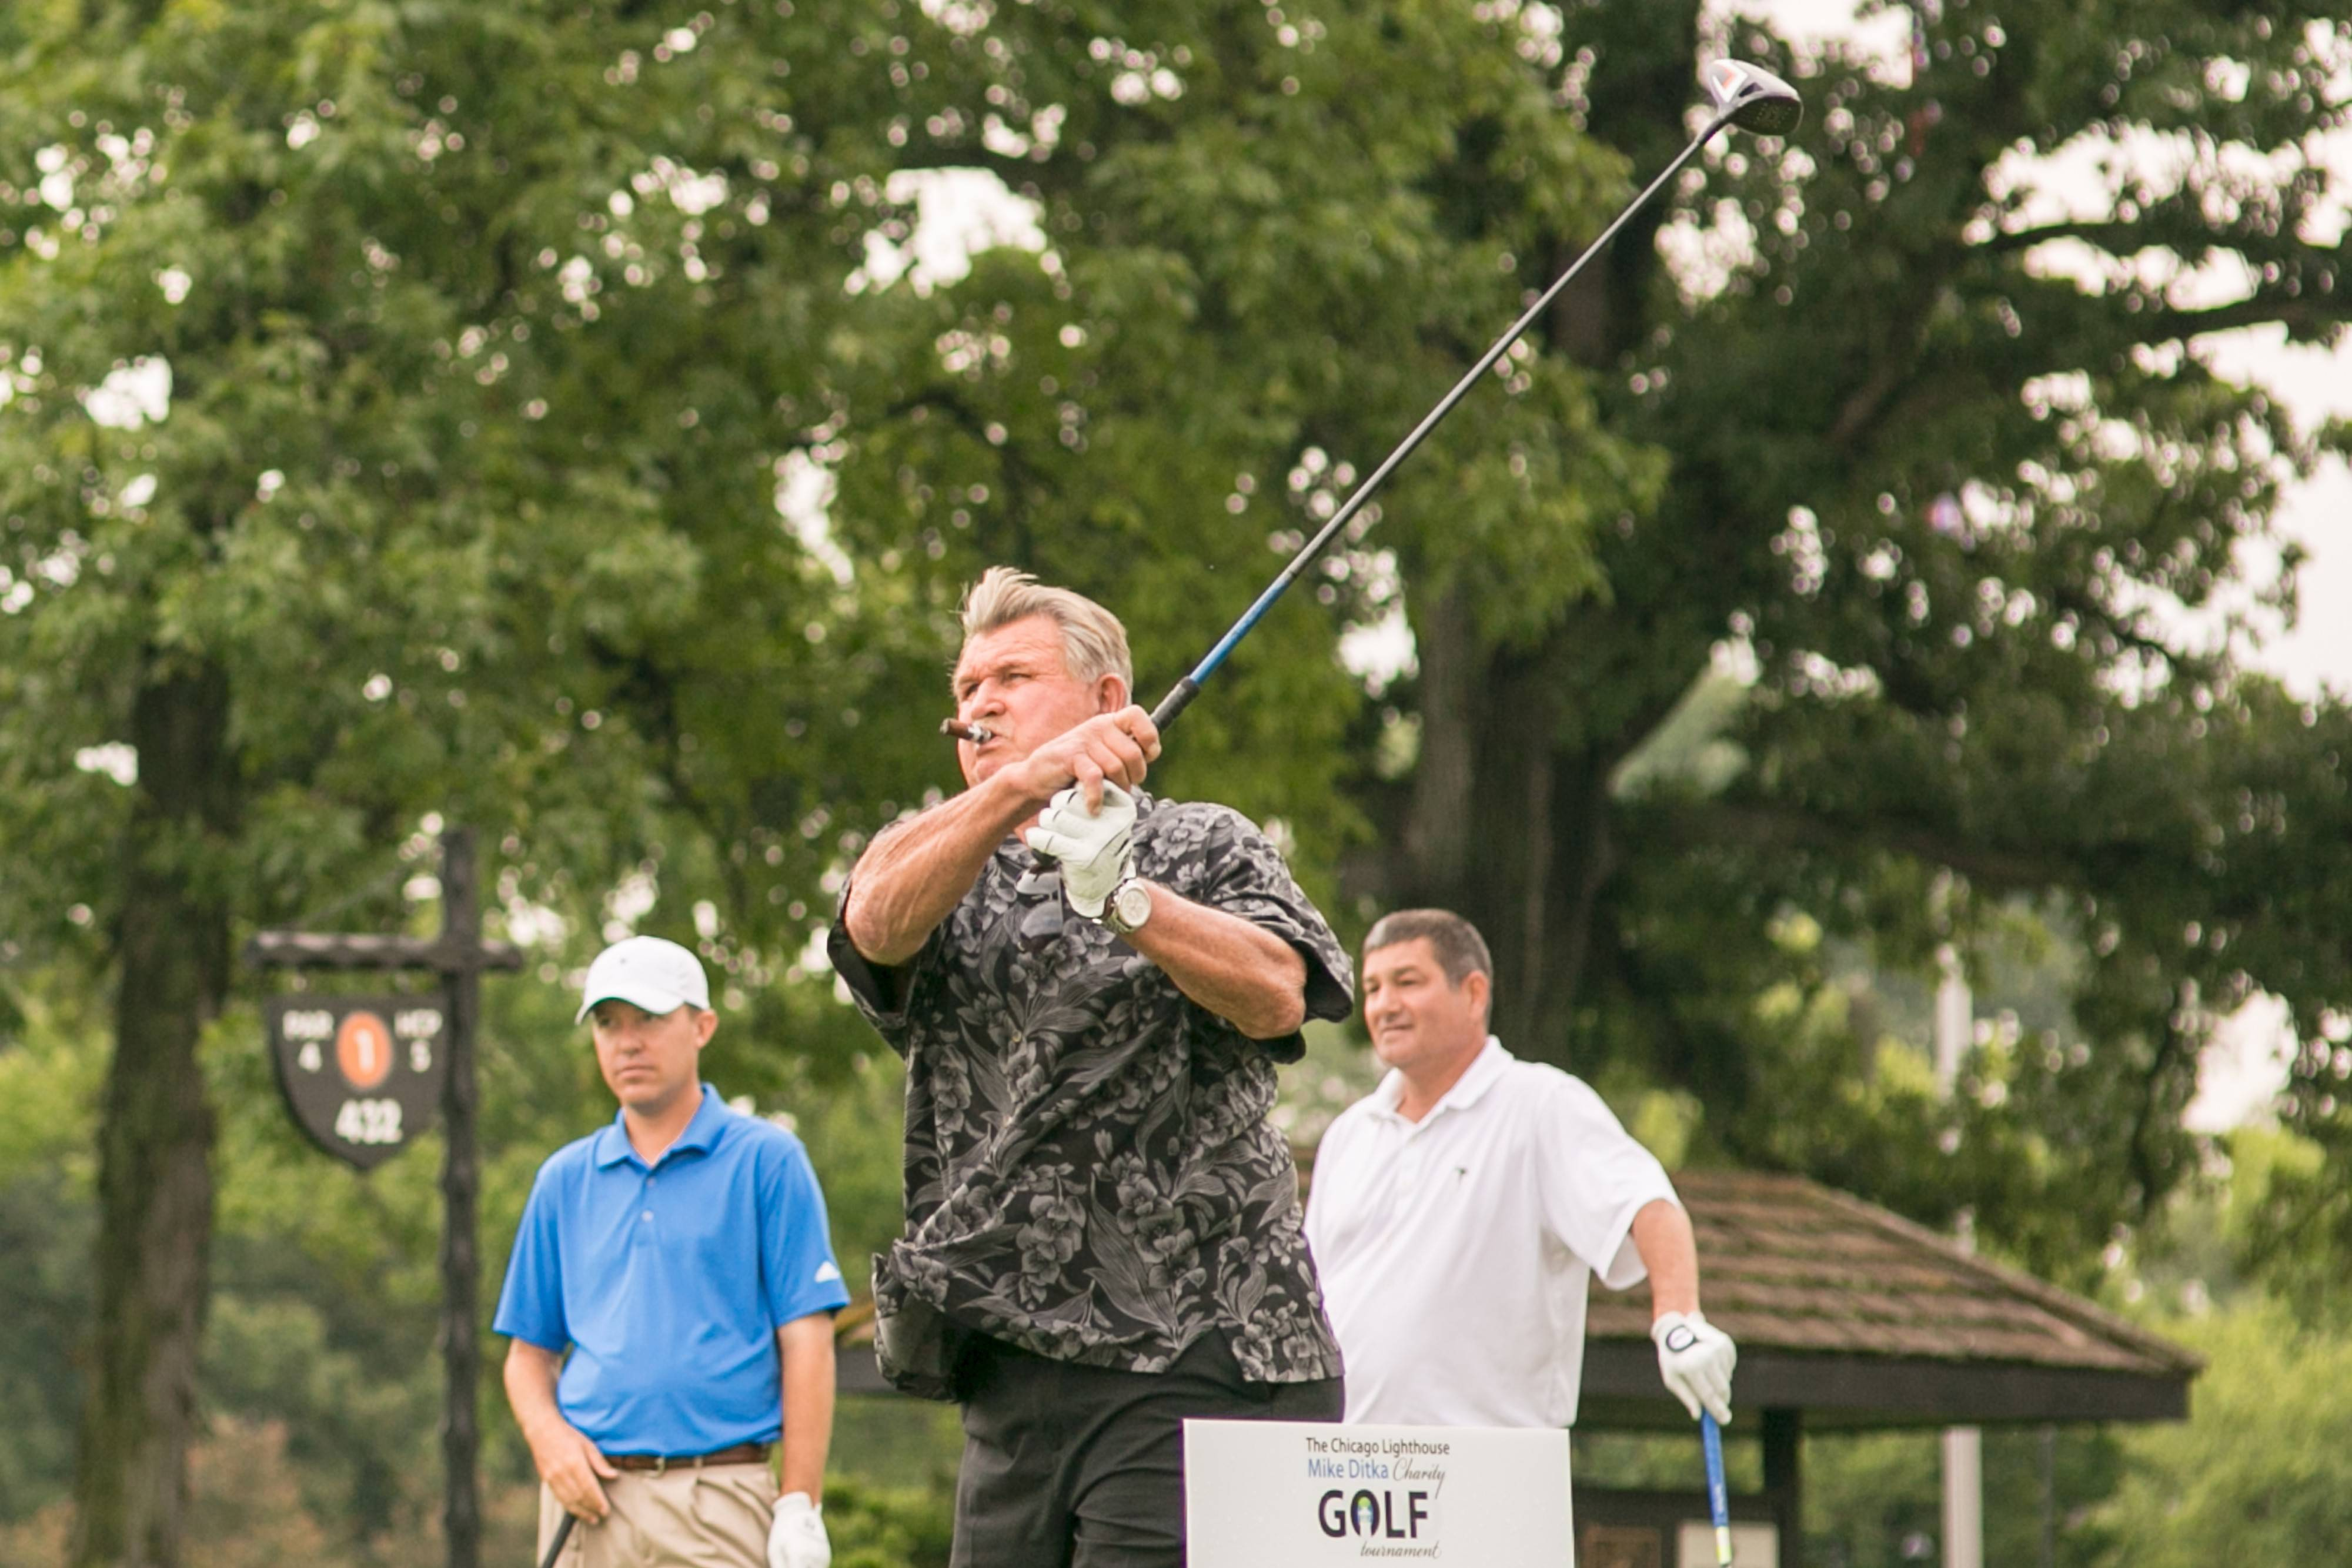 Mike Ditka tees off at The Chicago Lighthouse's second annual Mike Ditka Charity Golf Tournament, held at the North Shore Country Club in Glenview.